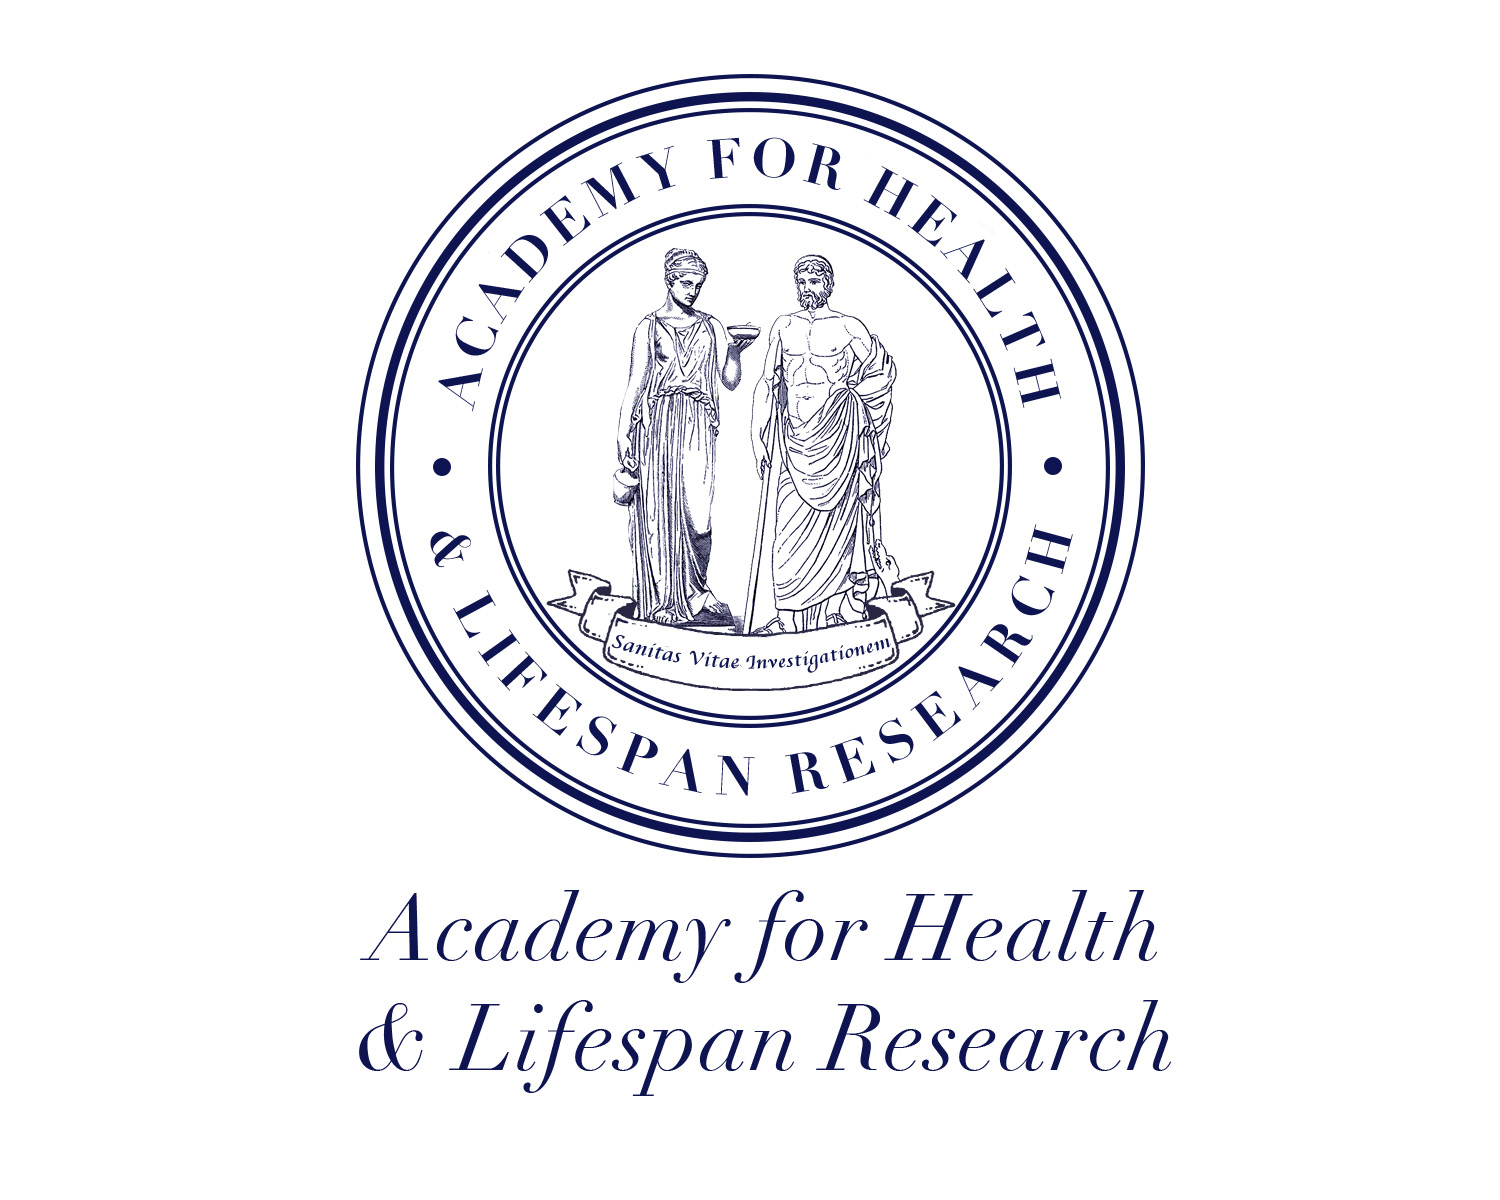 Academy for Health & Lifespan Research